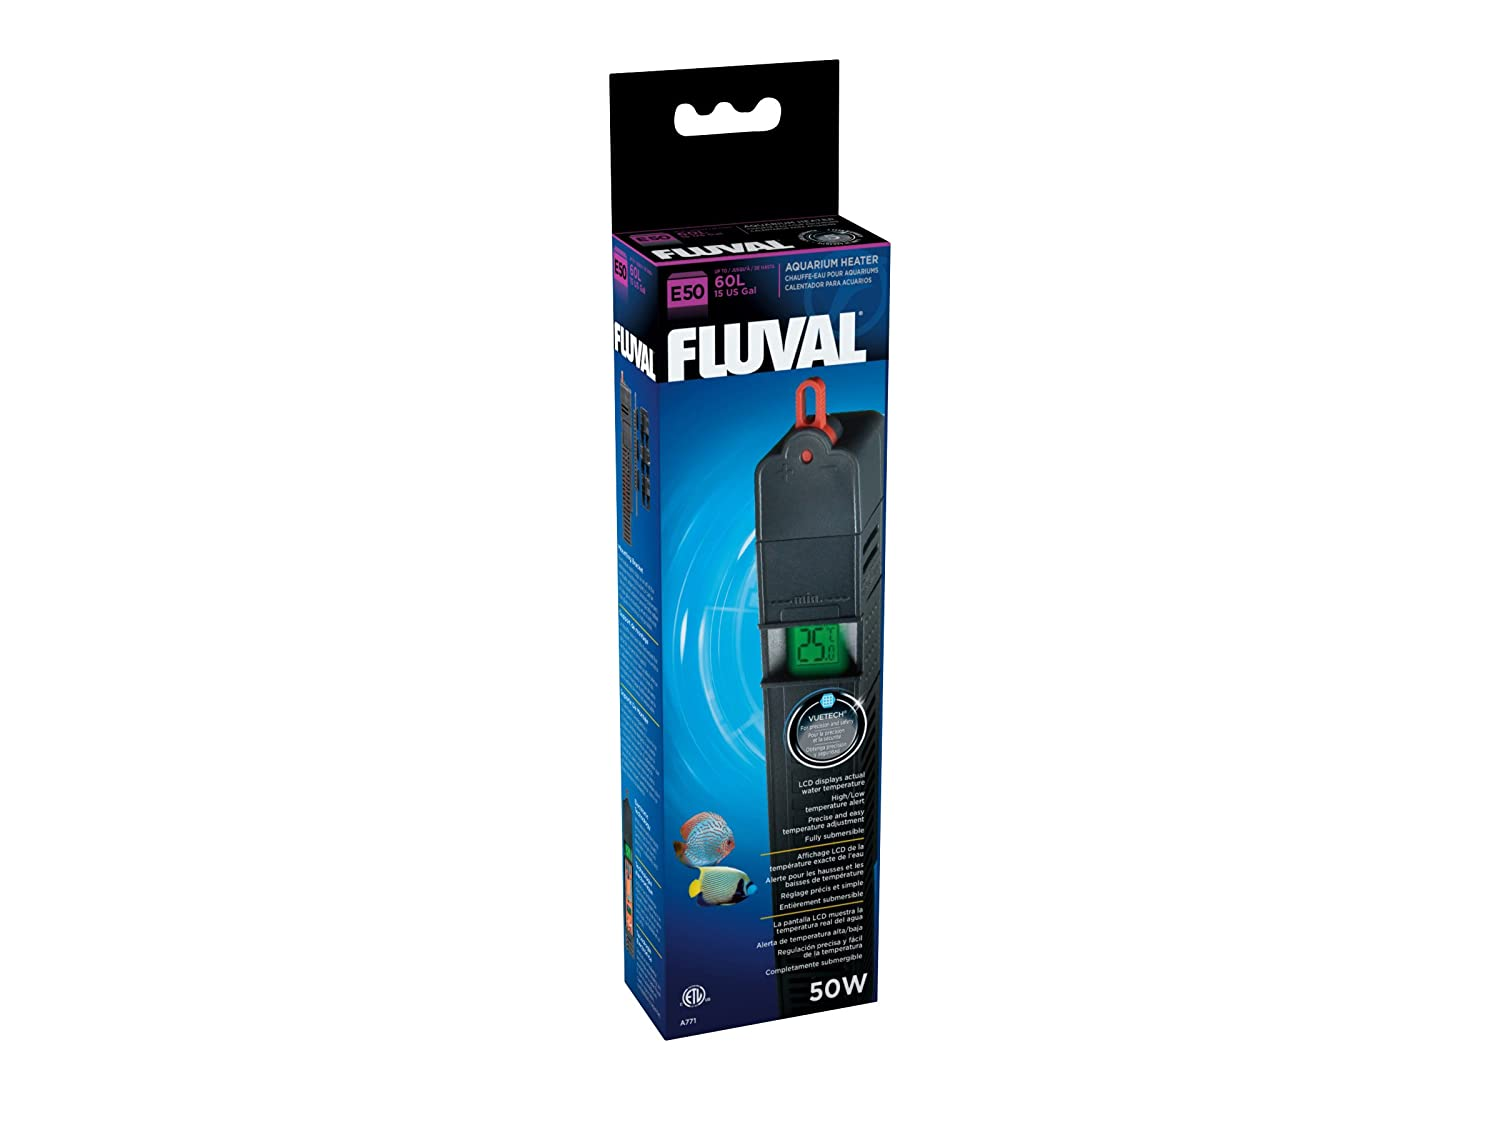 Amazon.com : Fluval E 50-Watt Electronic Heater : Aquarium Heaters : Pet Supplies